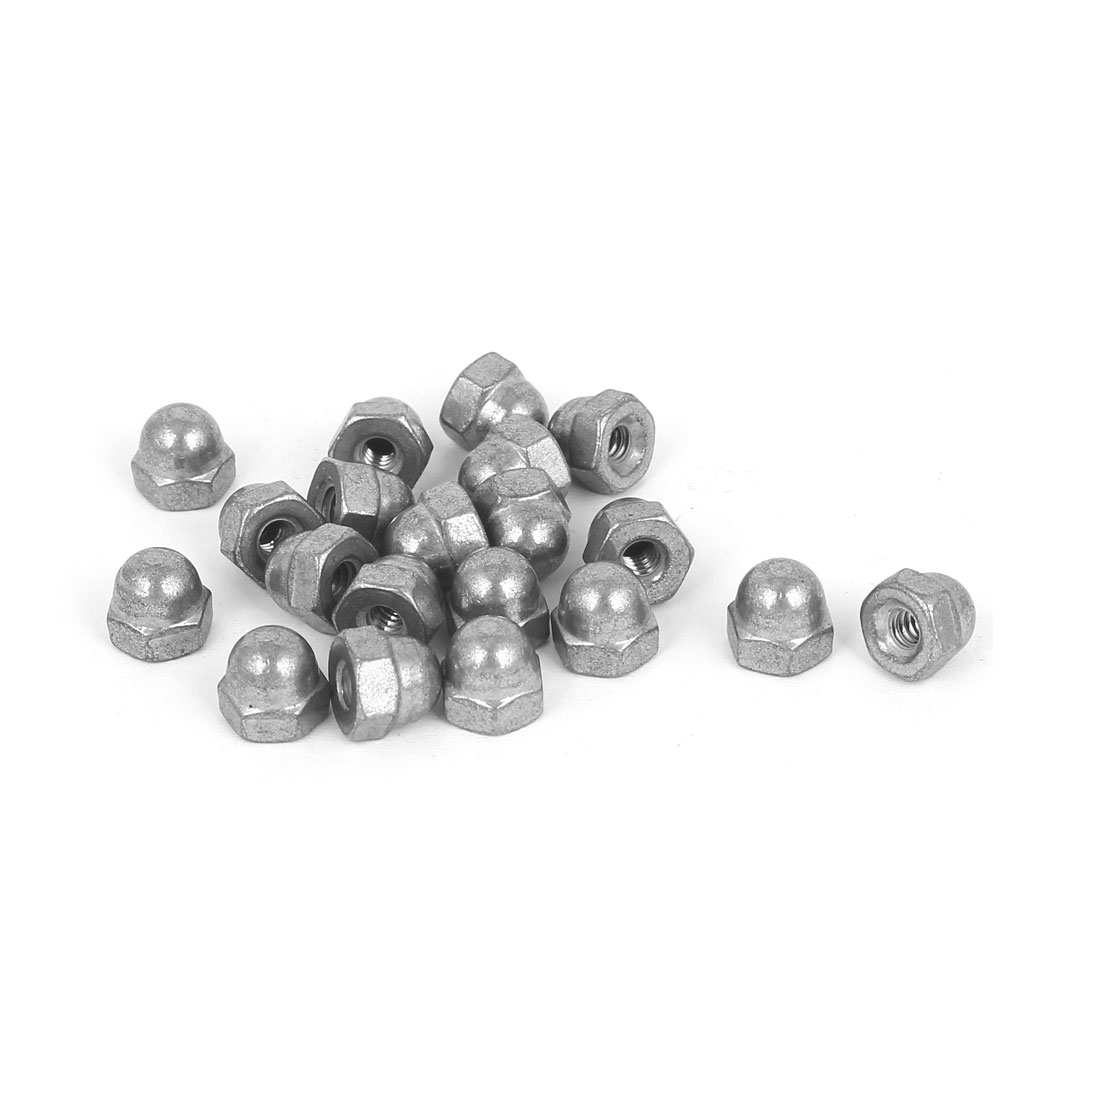 6#-32 304 Stainless Steel Dome Head Cap Hexagon Nuts Silver Tone 20 Pcs